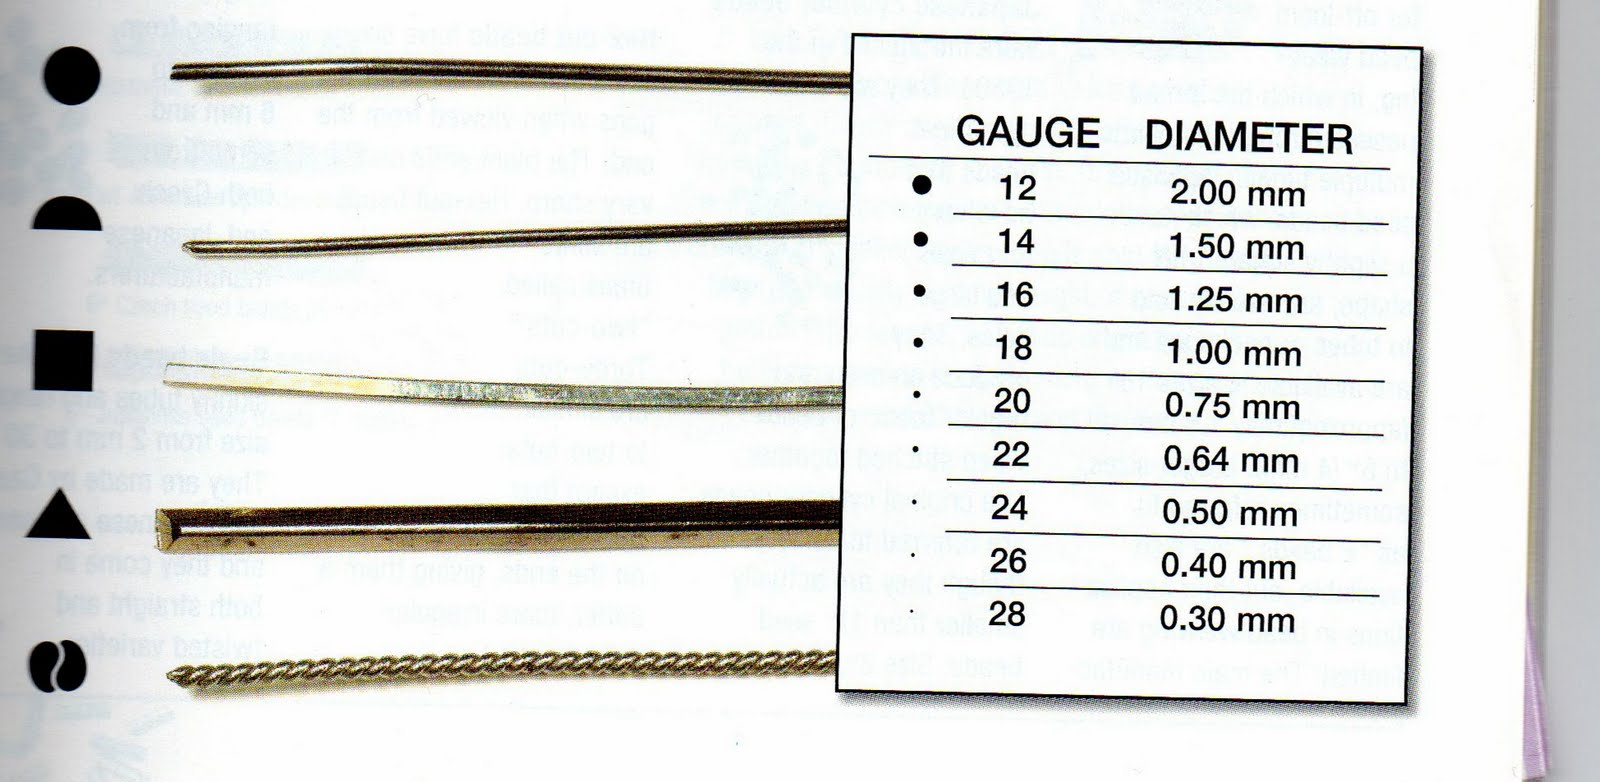 Awesome wire gauge chart actual size photos electrical and wiring nice jewelry wire gauge image collection wiring schematics and greentooth Image collections